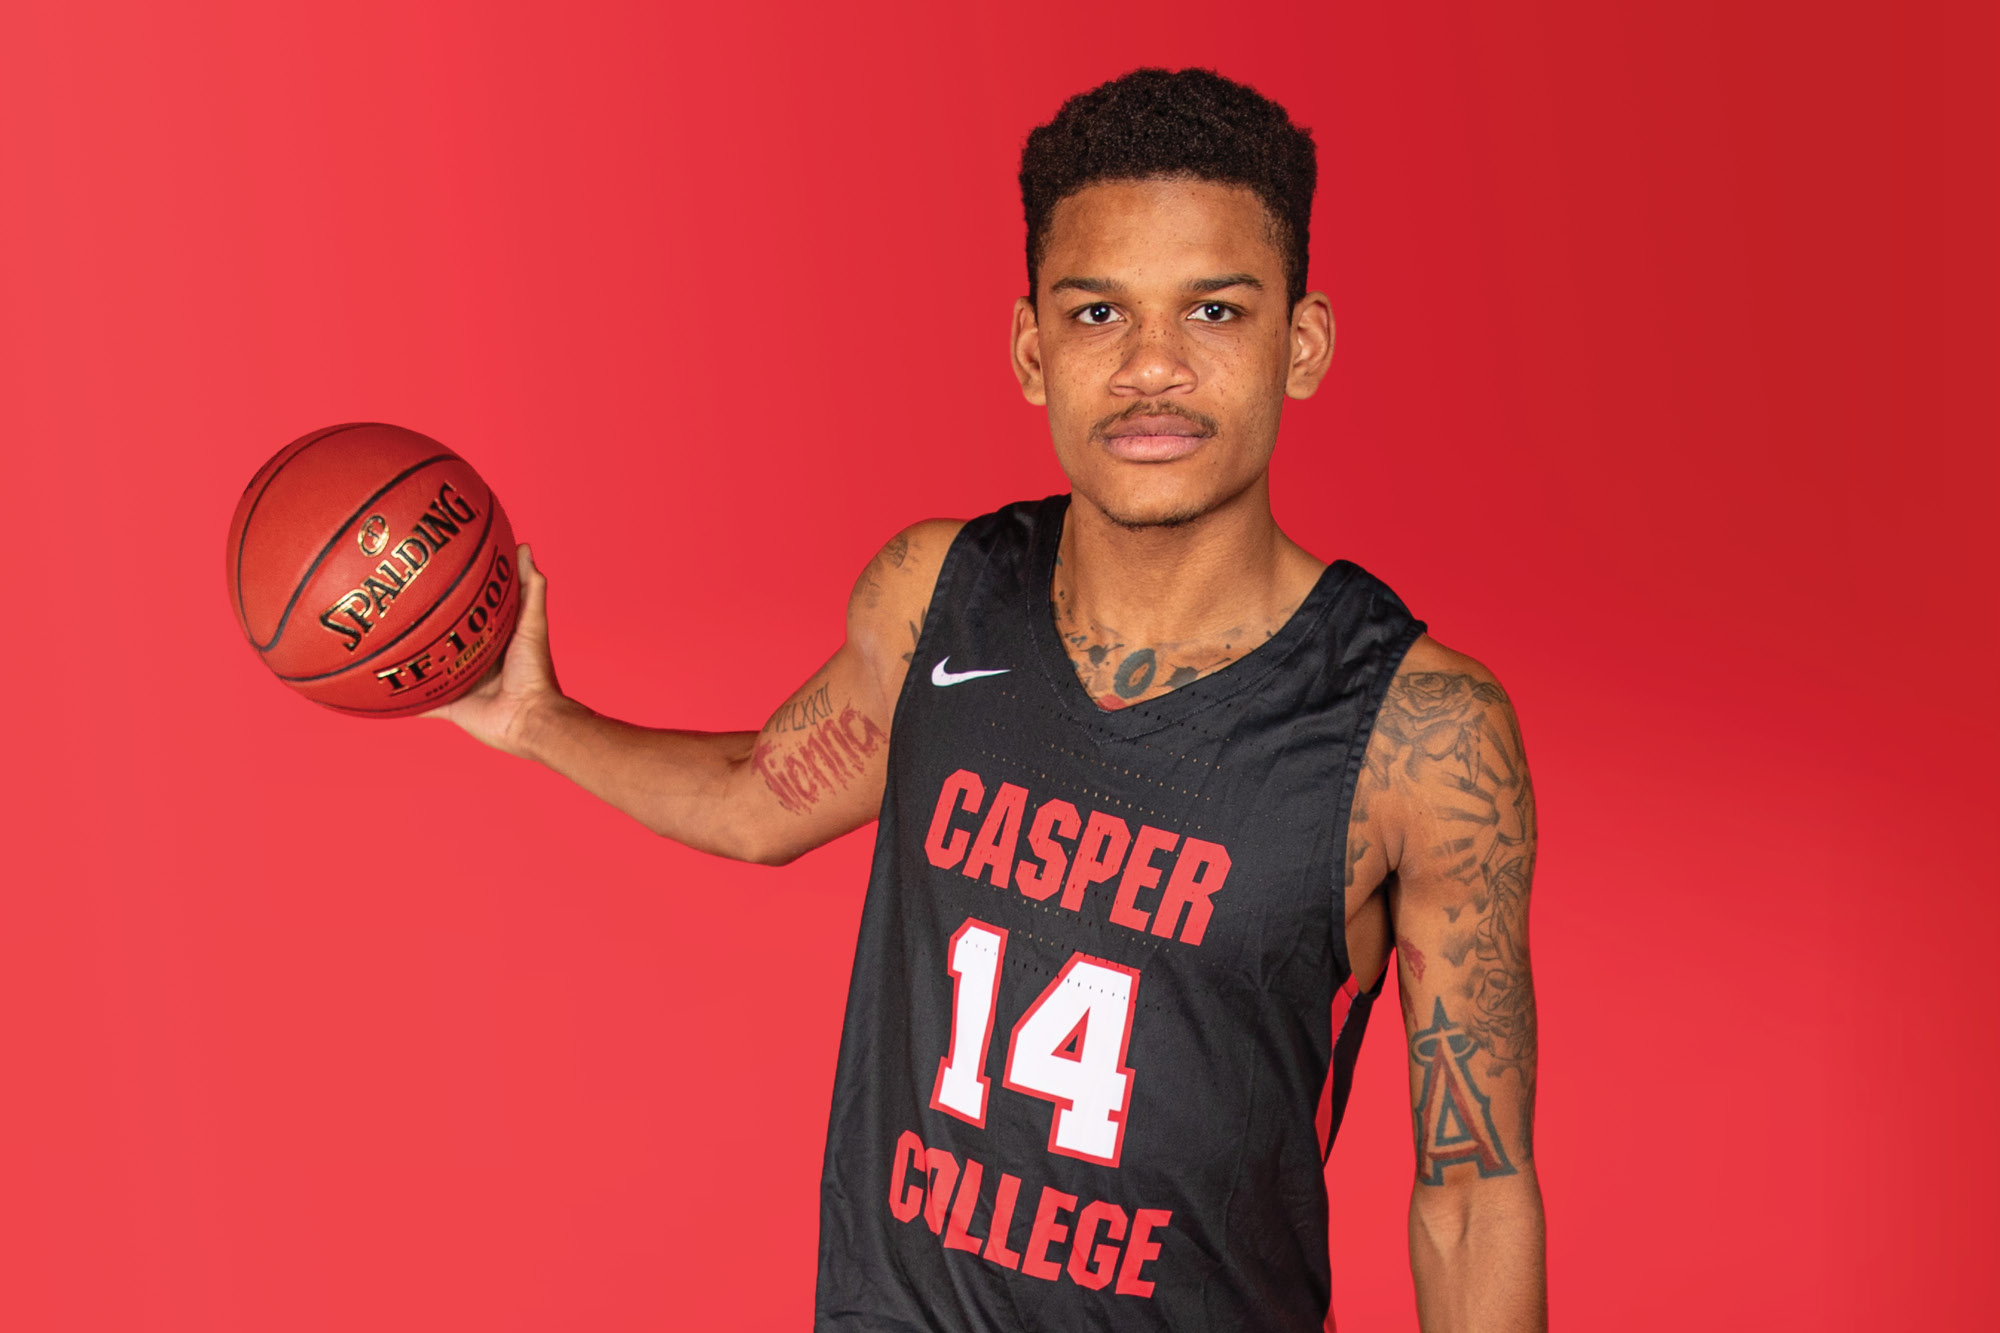 Casper College basketball player Tavion Robinson holding a basketball.